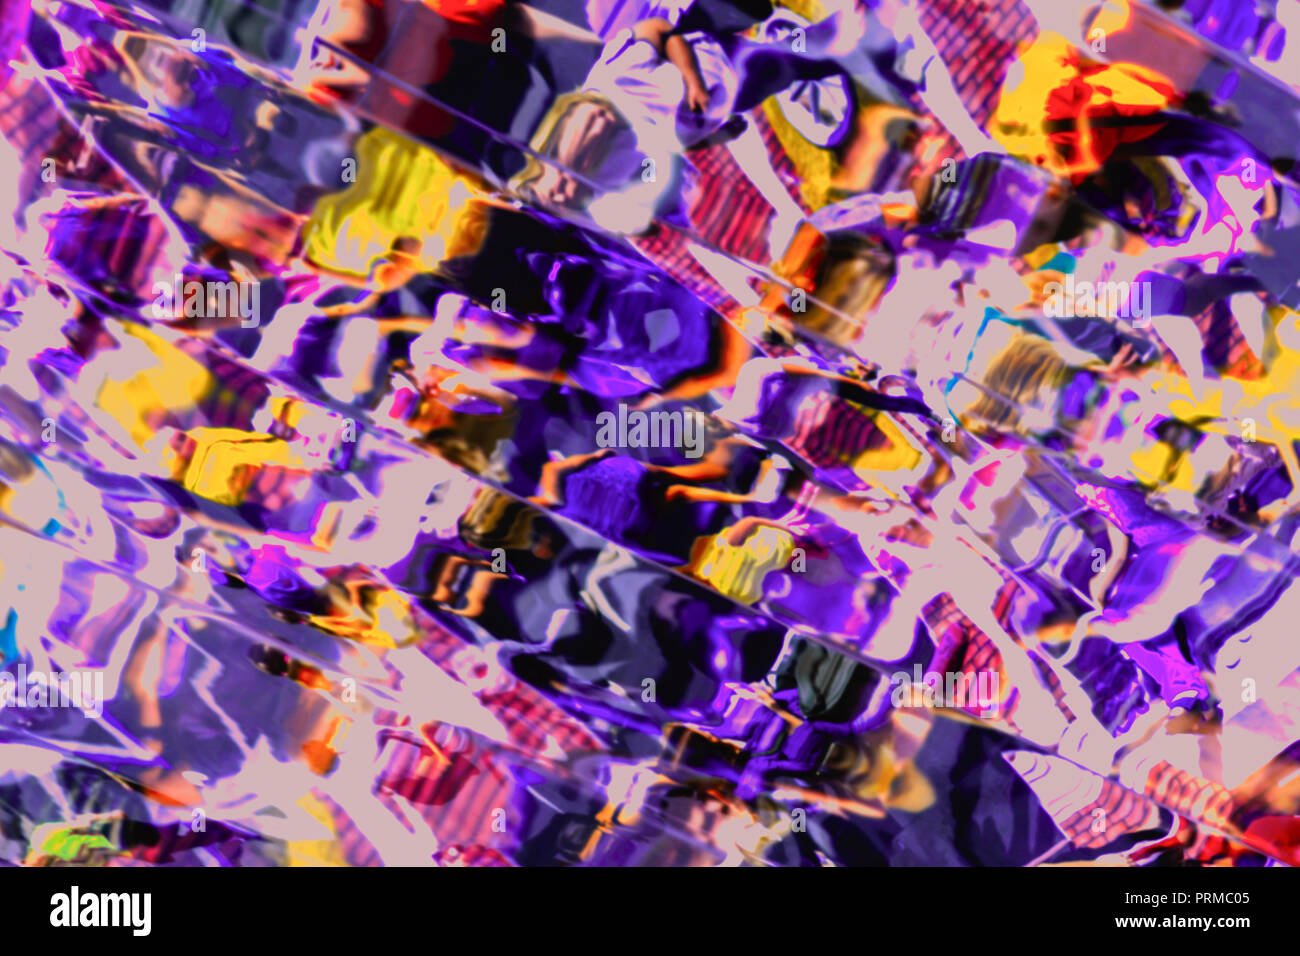 Distorted image with deformation in a variety of mirrors, abstract bright background for different themes - Stock Image